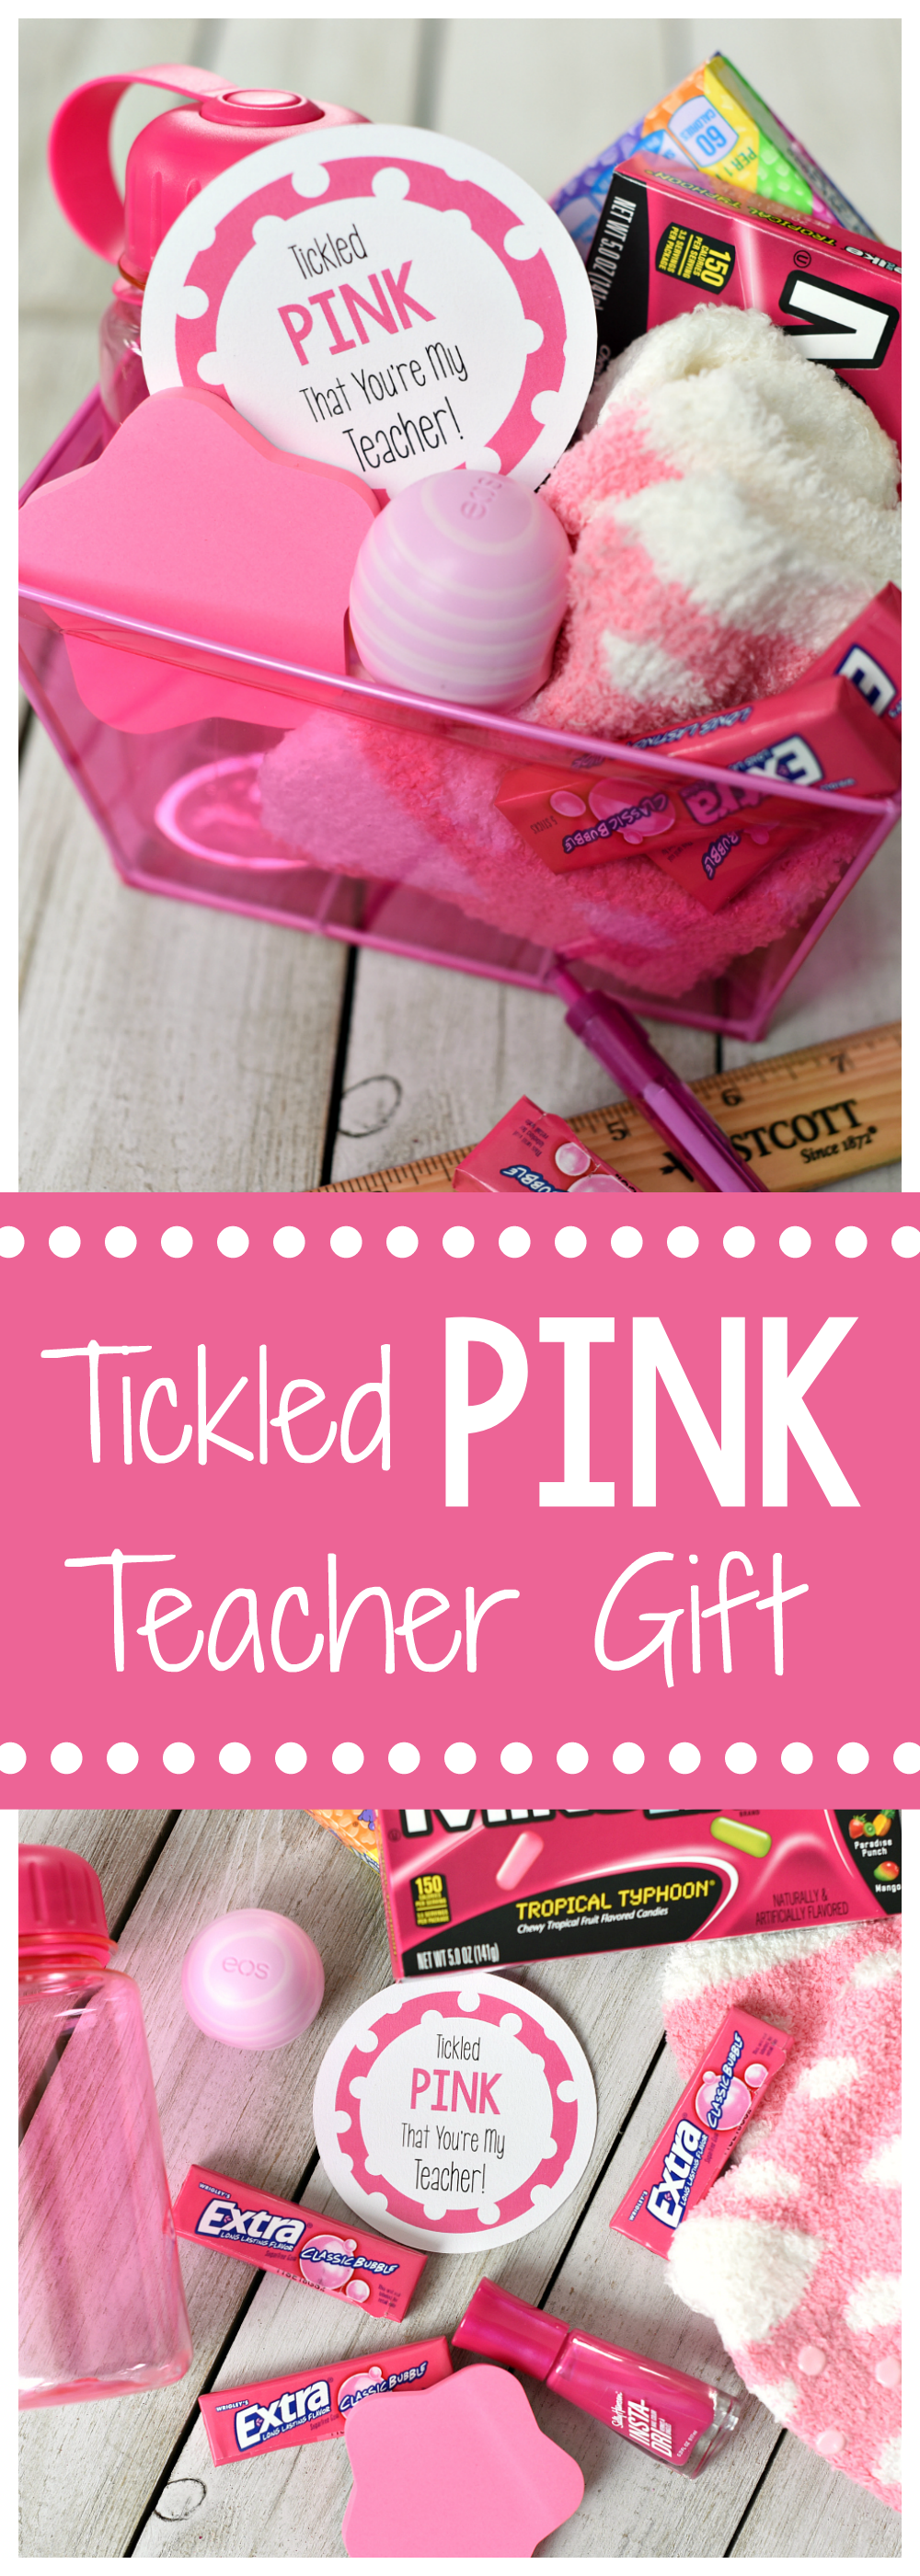 "Cute ""Tickled Pink"" Teacher Gifts-Fill a gift basket with pink things and add this cute tag and you've got the best gift for a teacher! #teacherappreciation #teachergifts #teachergiftsendofyear"